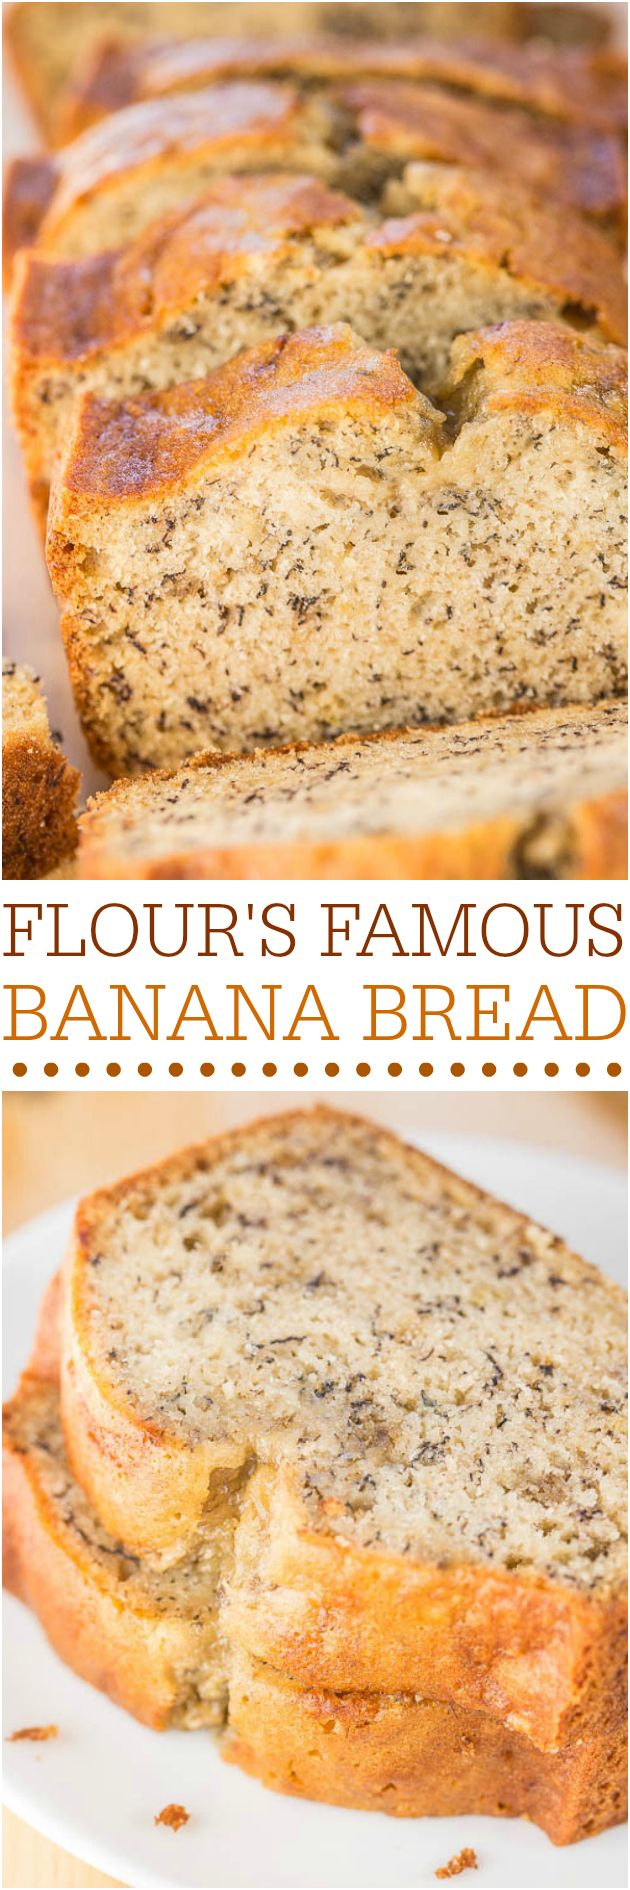 recipe Verdict  turbo Made real video fabulous  Flour     s fire if lives with it   it   results see Bread to Banana the up Famous to Make Flour famous Totally Bakery     s hype